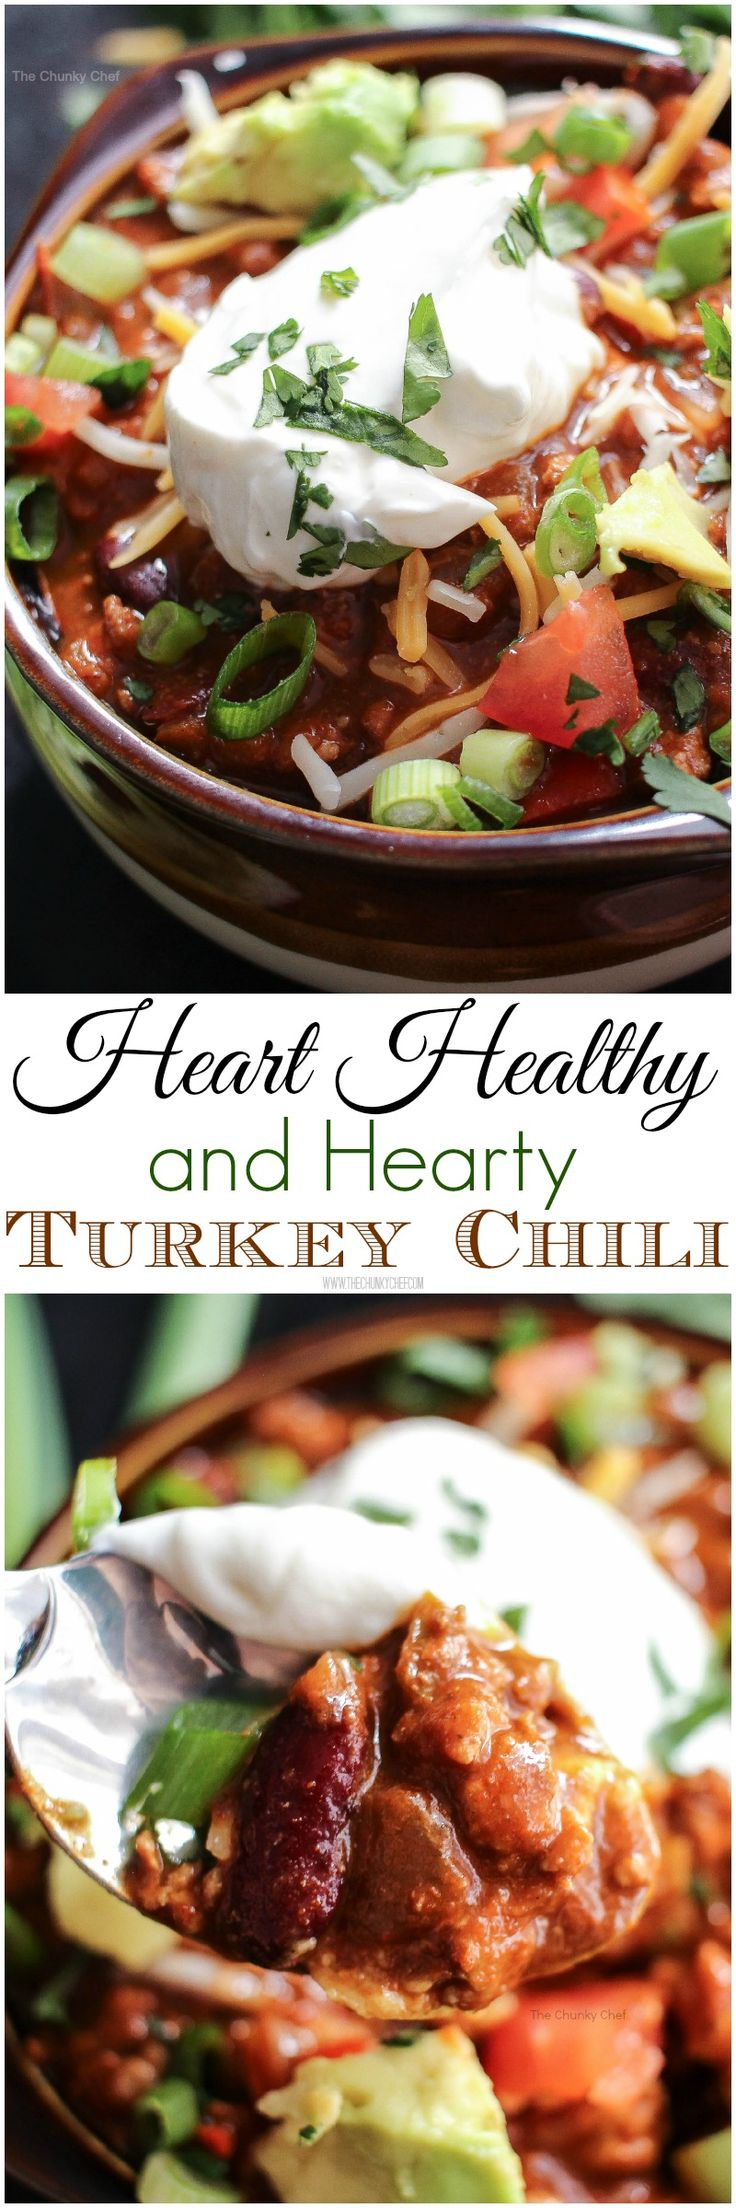 Heart Healthy Turkey Chili. Chili is such a perfect winter meal, so how about making this heart healthy yet super hearty turkey chili tonight? You won't believe how great it tastes!